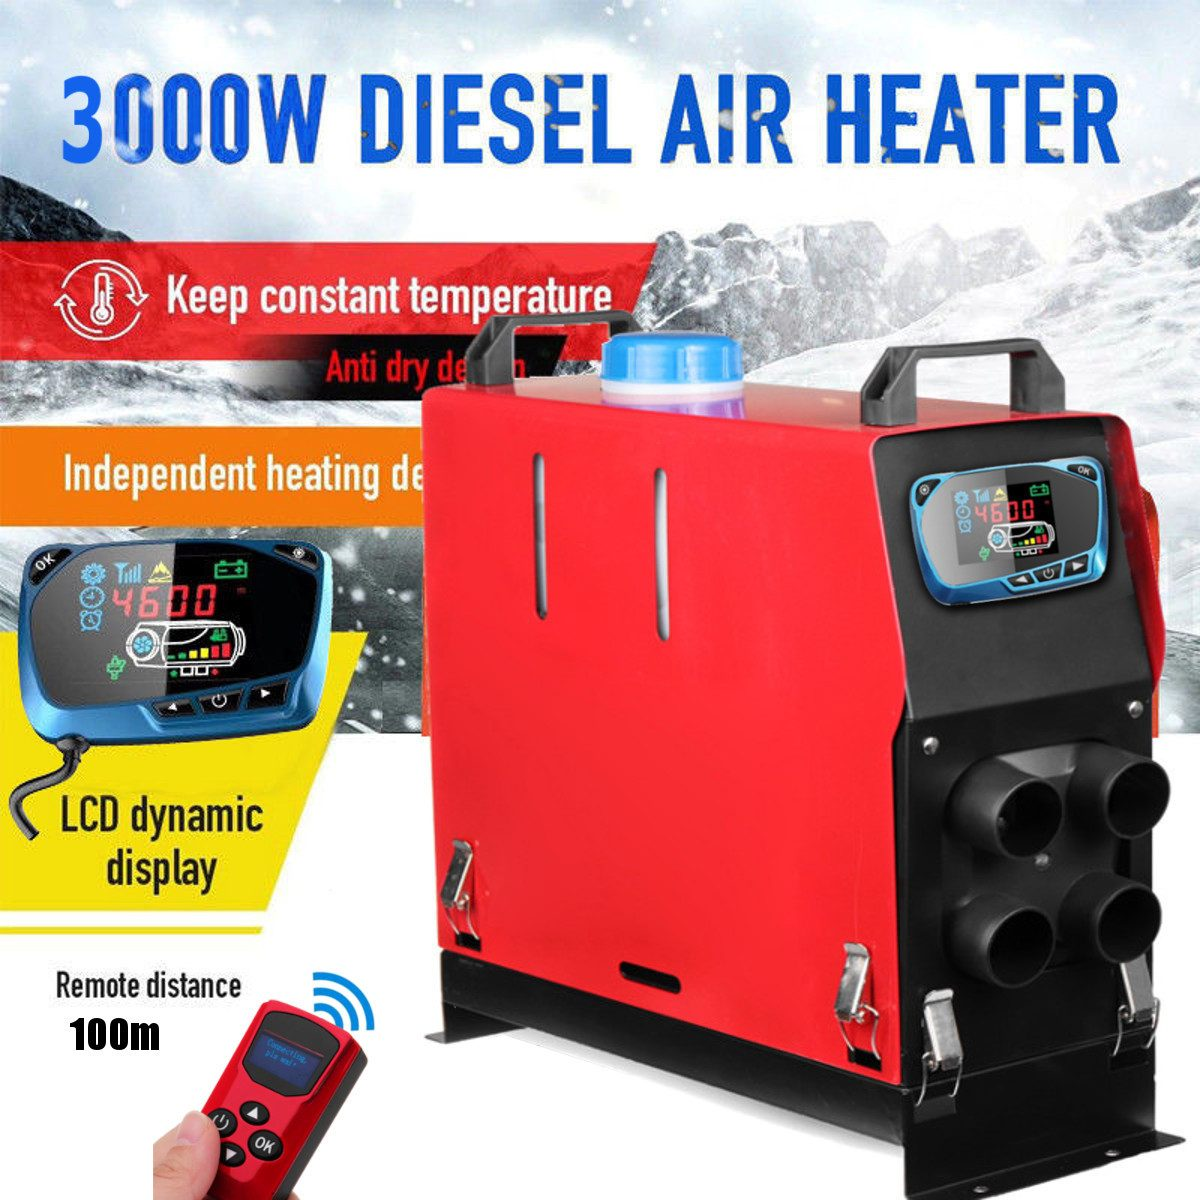 3000W Air diesels Heater 3KW 12V 1 Hole Car Heater For Trucks Motor-Home Boats Bus +LCD key Switch + Silencer +English Remote3000W Air diesels Heater 3KW 12V 1 Hole Car Heater For Trucks Motor-Home Boats Bus +LCD key Switch + Silencer +English Remote